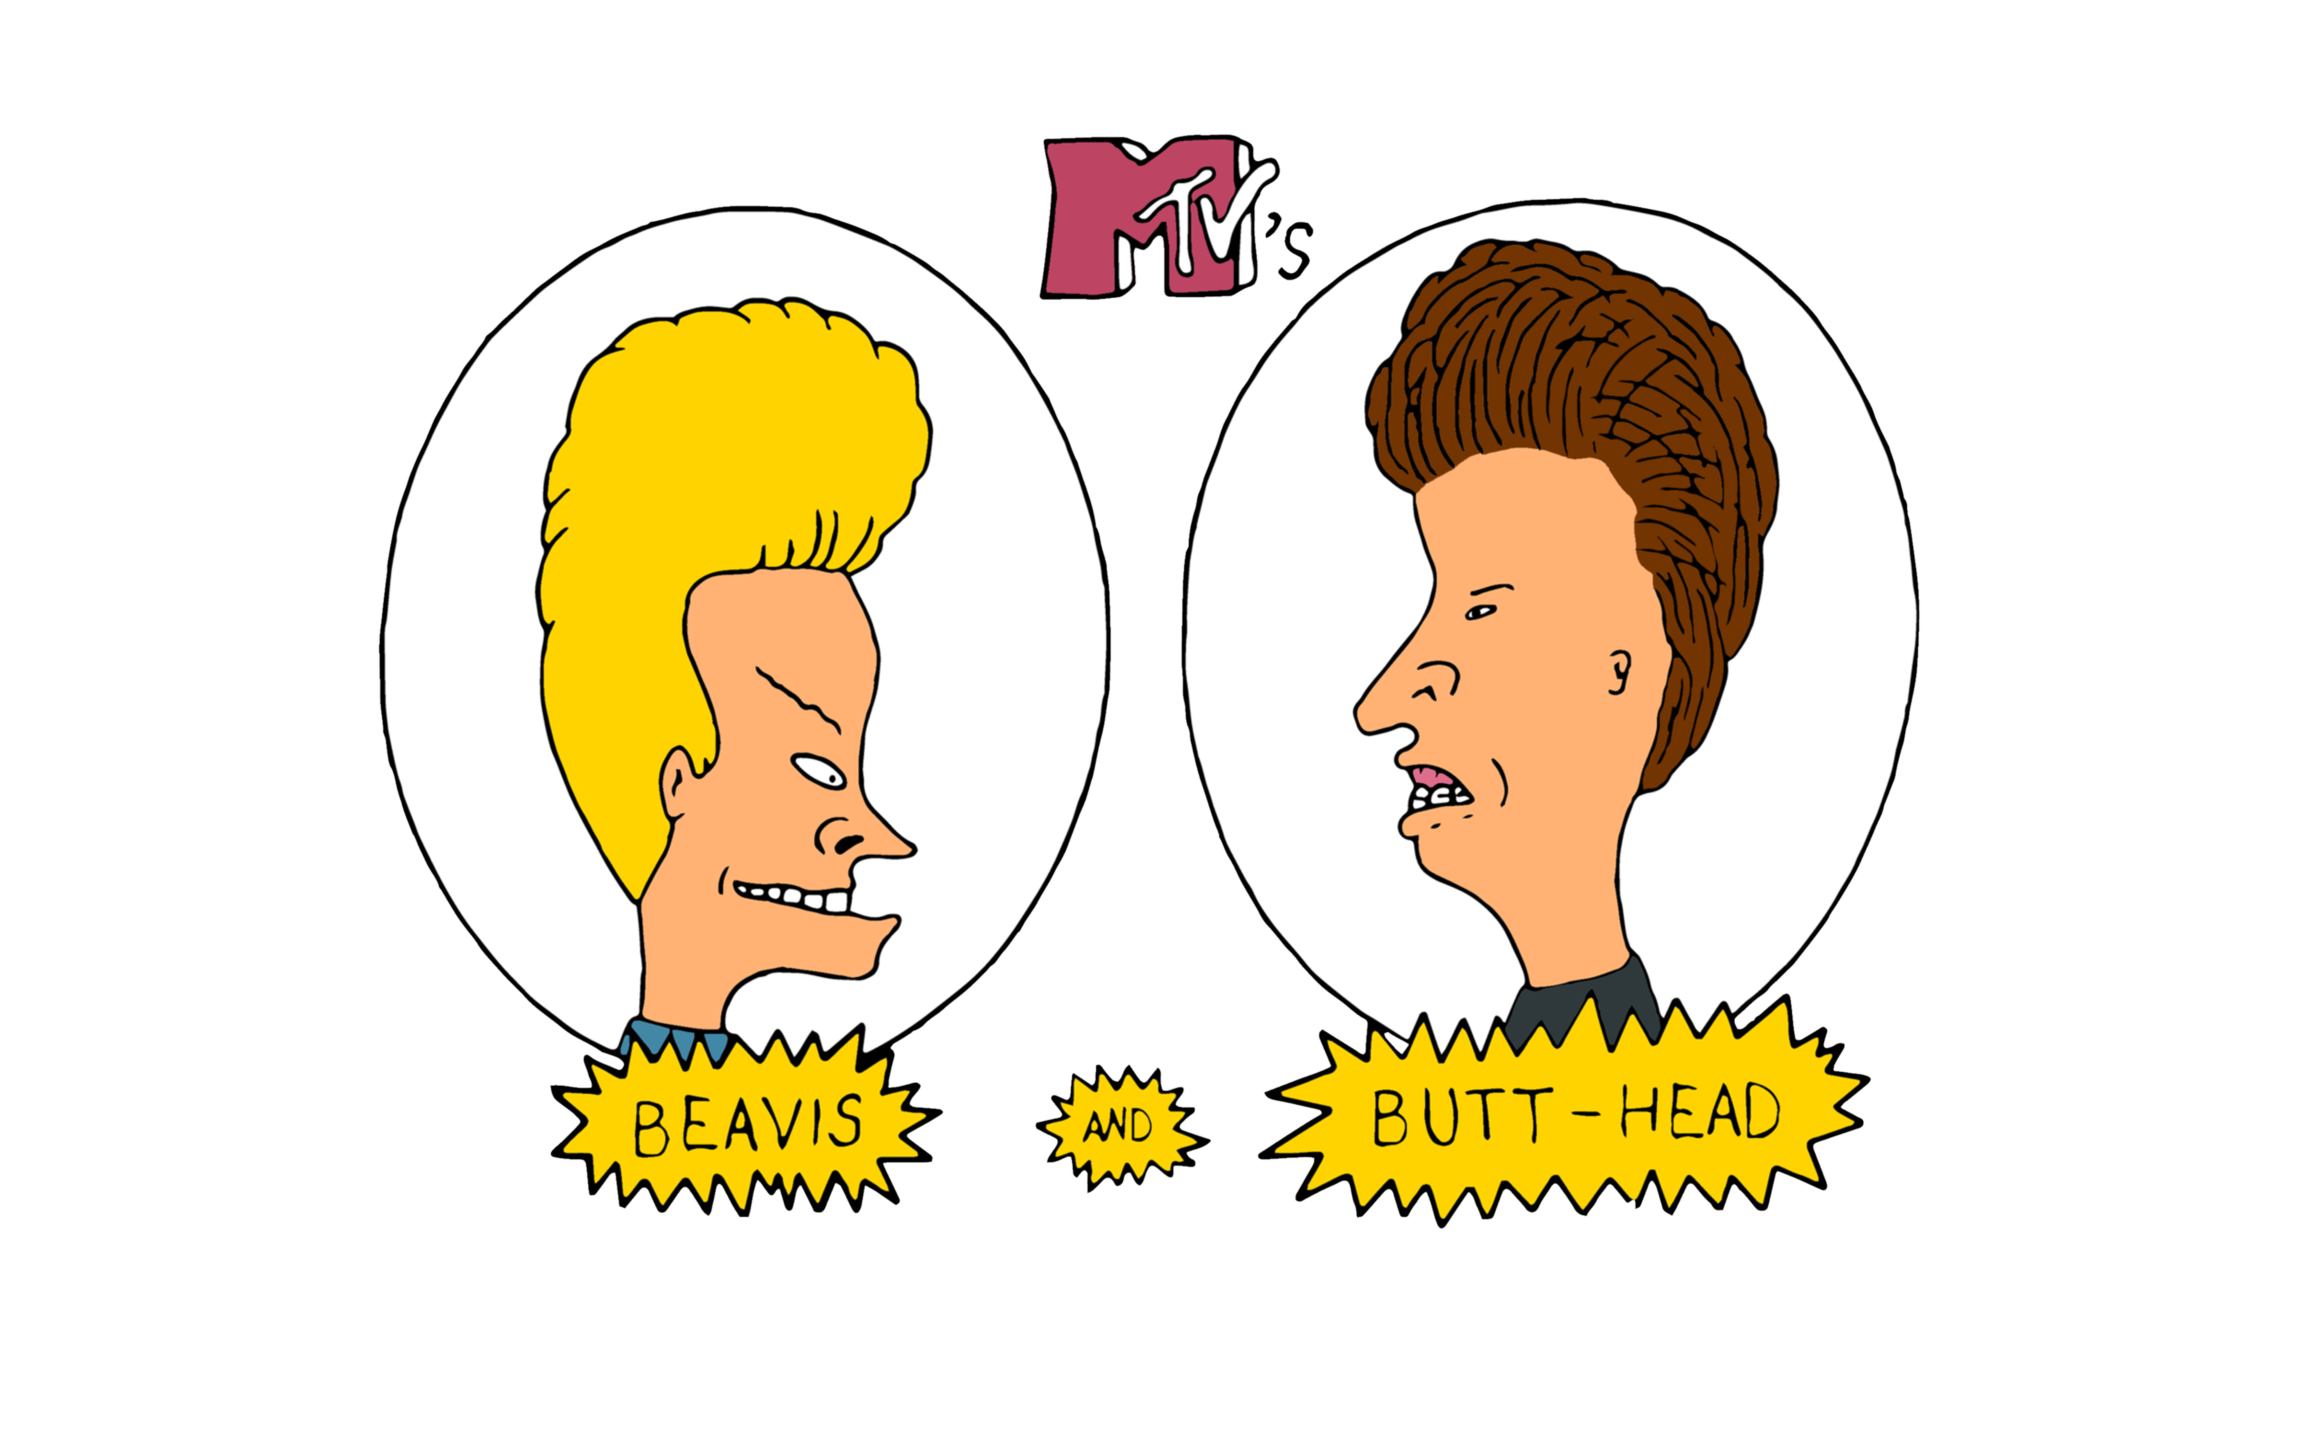 Beavis And Butthead Wallpaper Pack